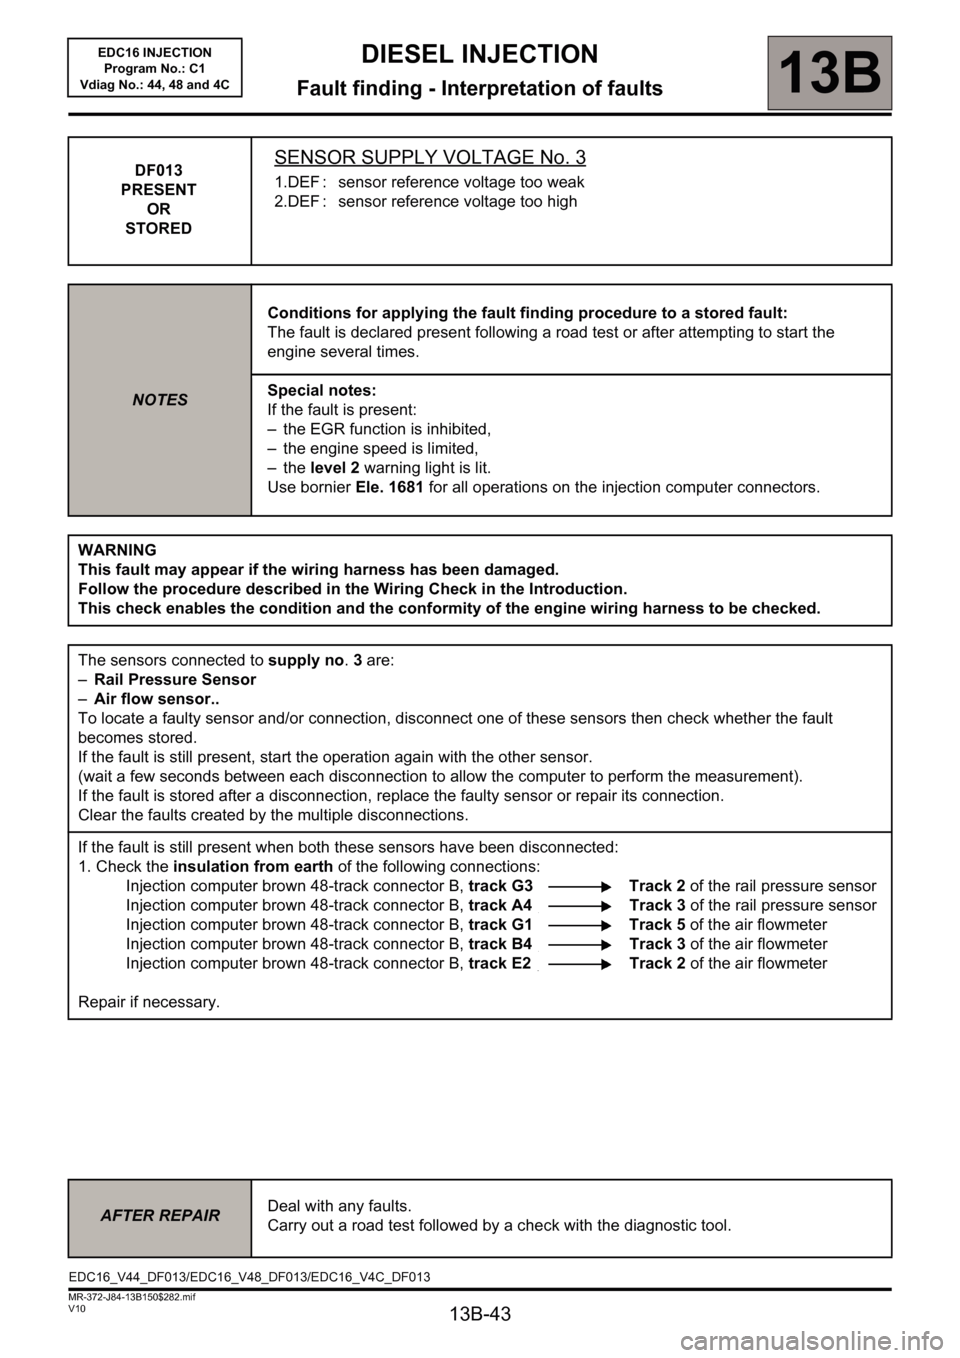 RENAULT SCENIC 2011 J95 / 3.G Engine And Peripherals EDC16 Injection Workshop Manual, Page 43